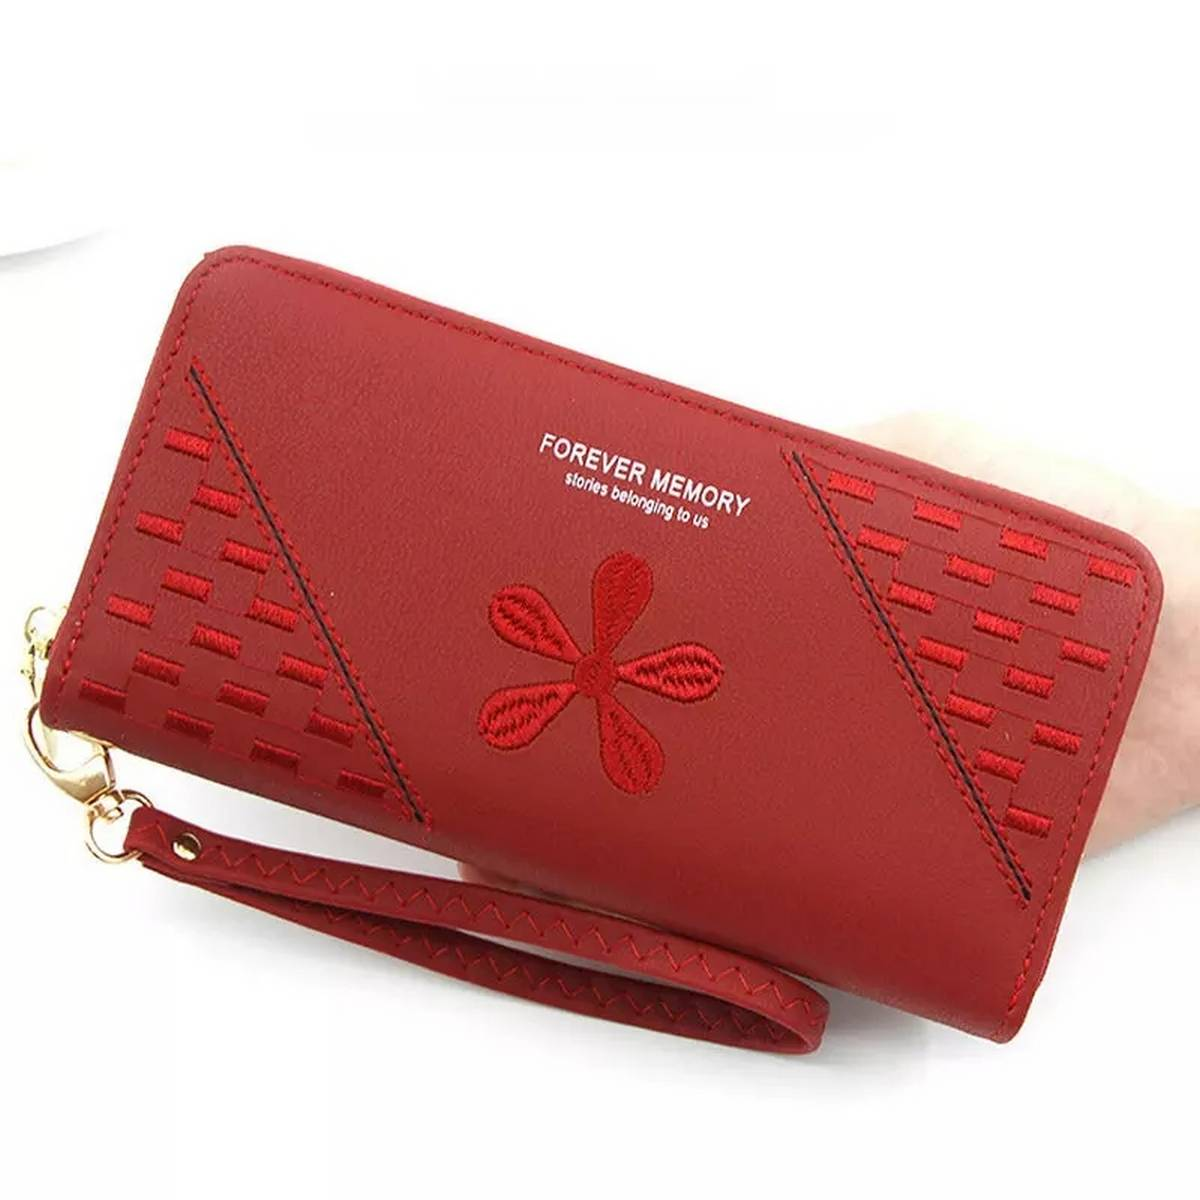 Embroidery Flowered Ladies Wallet and Clutch